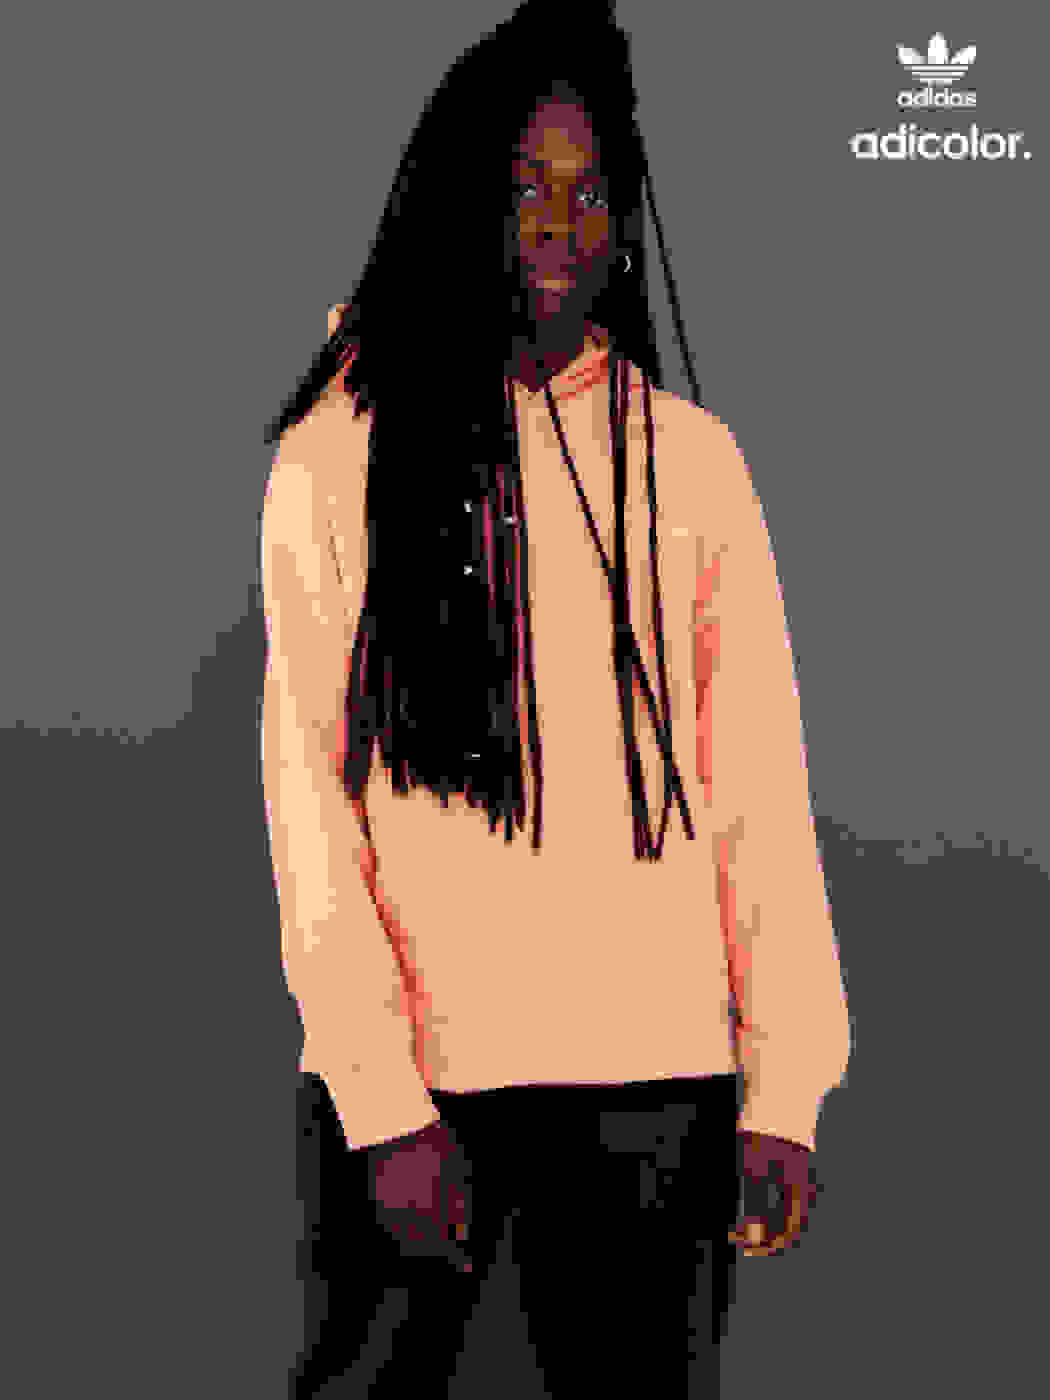 Man wearing contemporary pastel colored hooded sweater and black pants